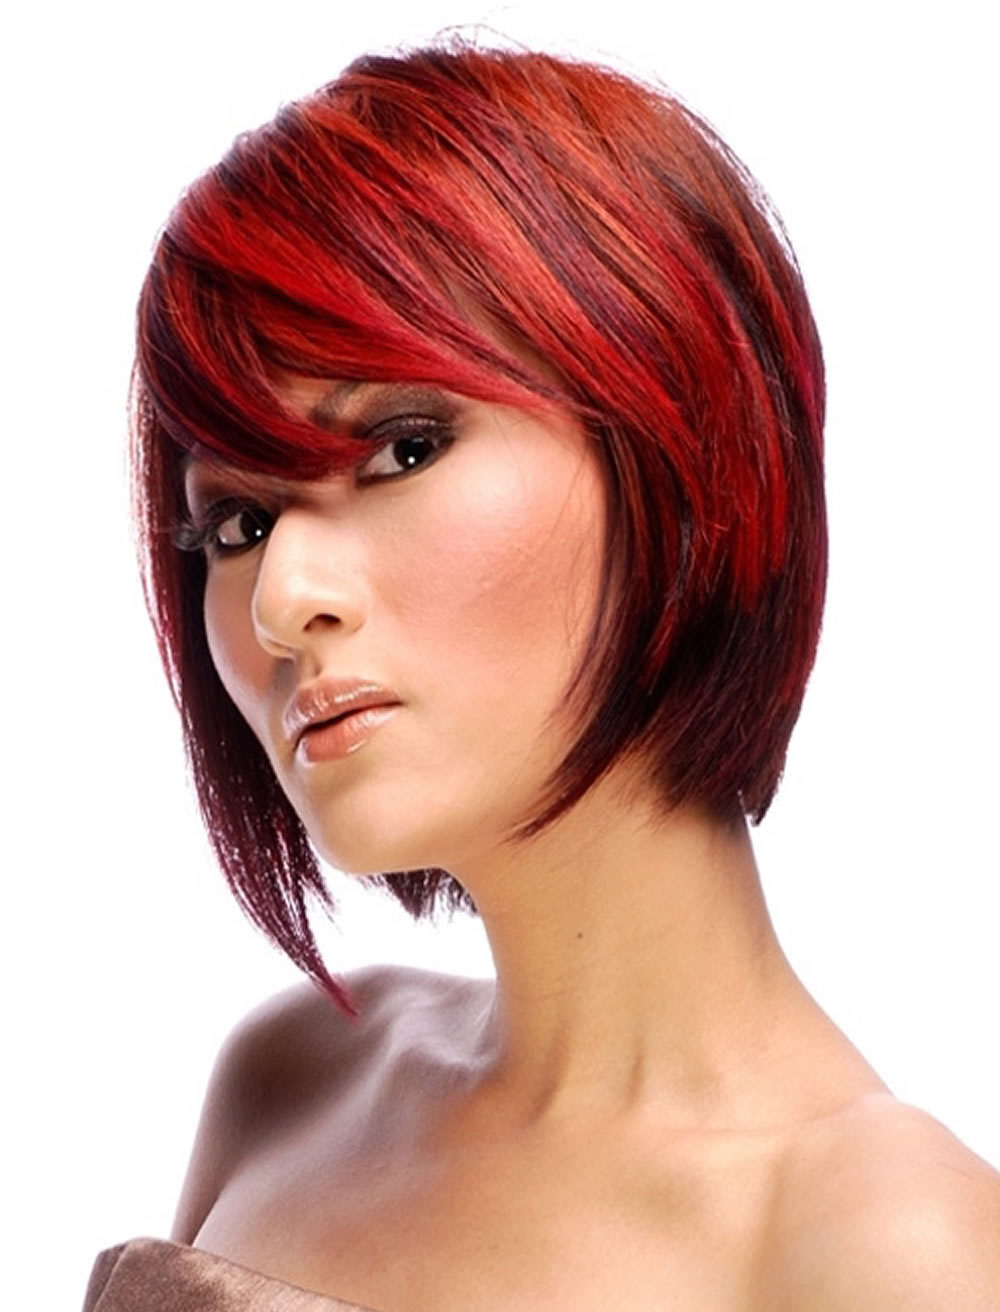 Red Hair Color For Short Hairstyles   27 Cool Haircut Tutorial For Inside Bright Red Short Hairstyles (View 4 of 25)